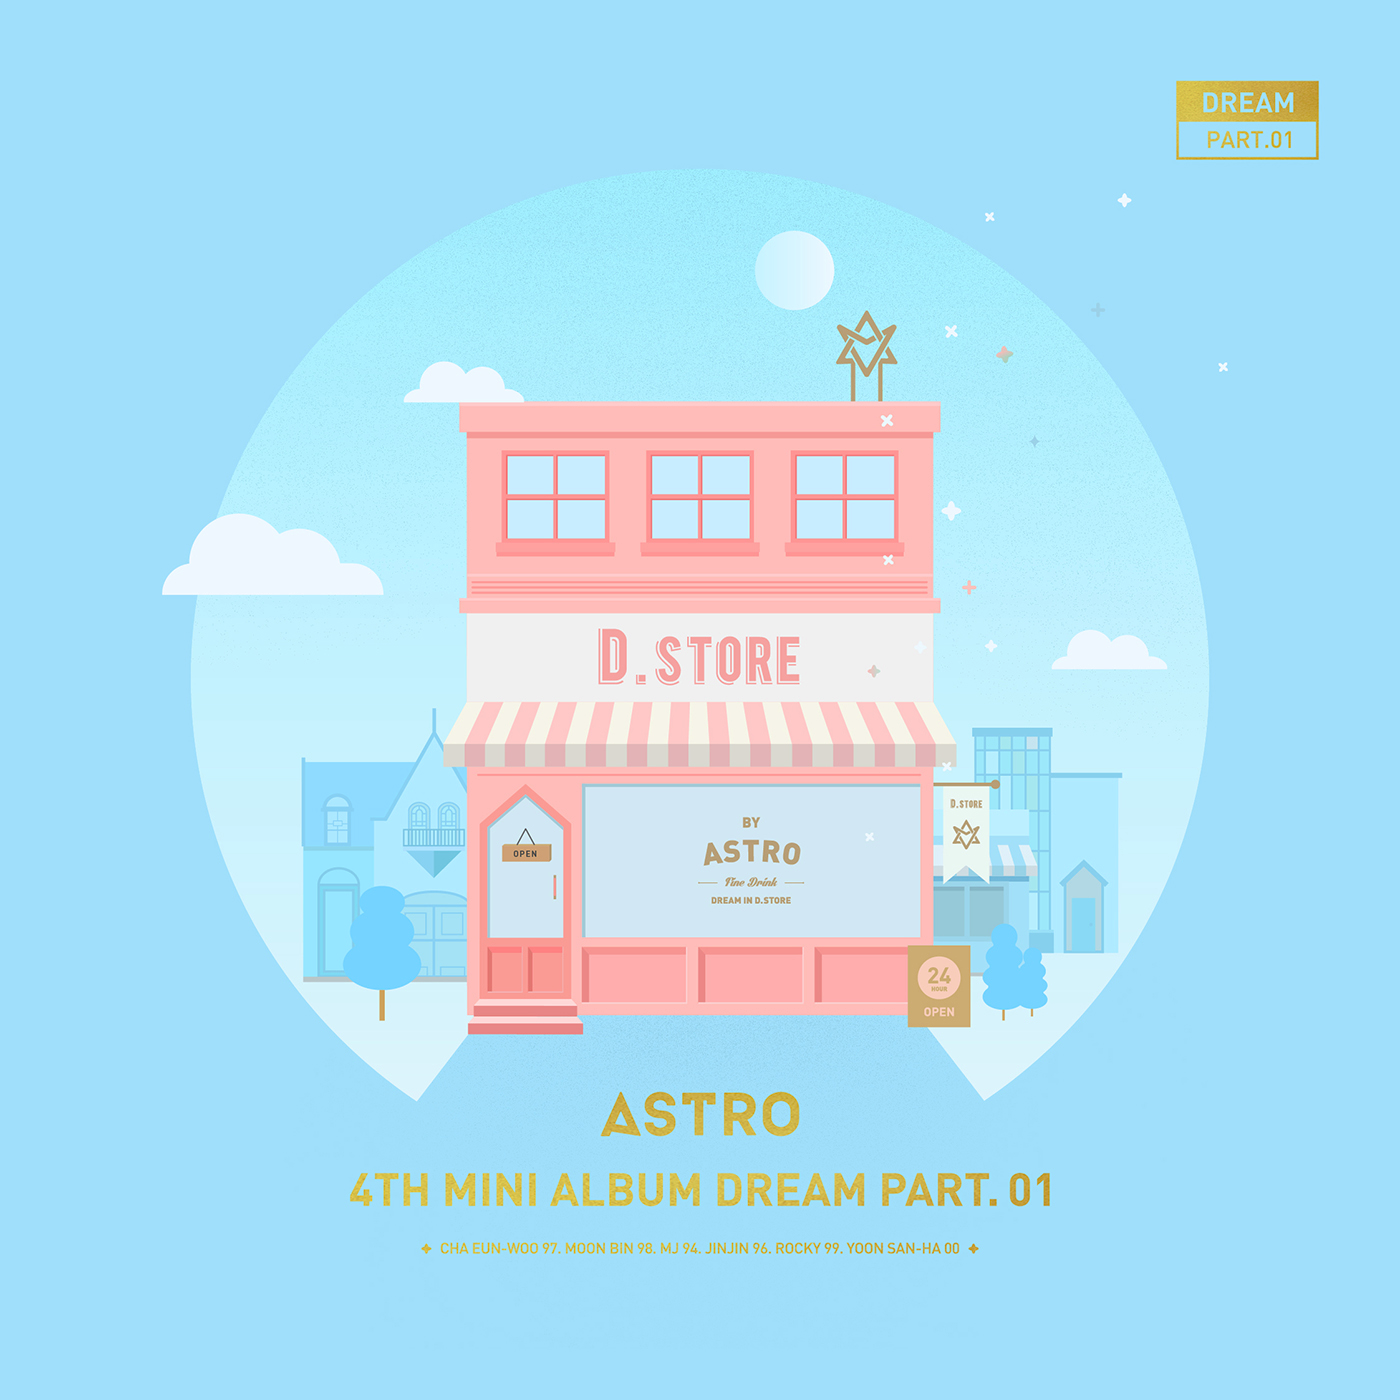 Image - ASTRO Dream Part.01 Day Ver Cover Art.png